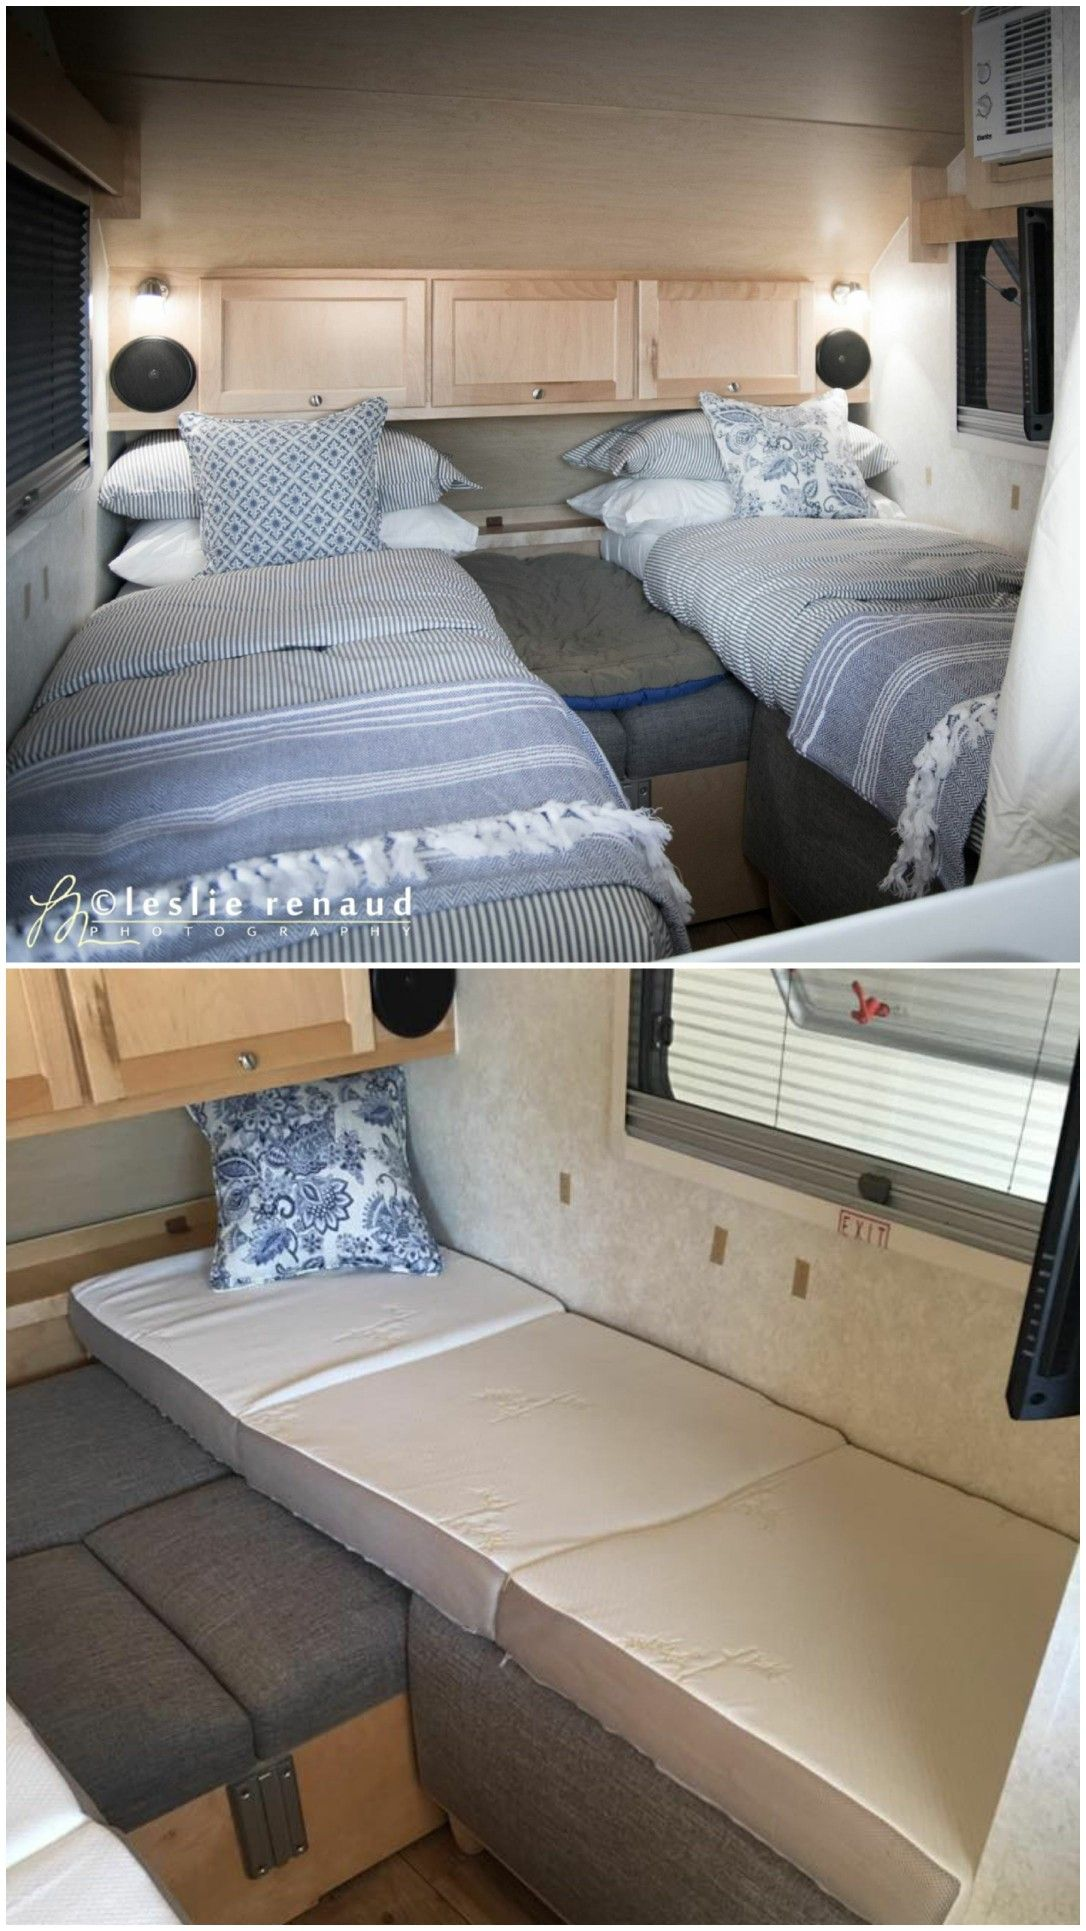 Modifications With Images Teardrop Camper Interior Camper